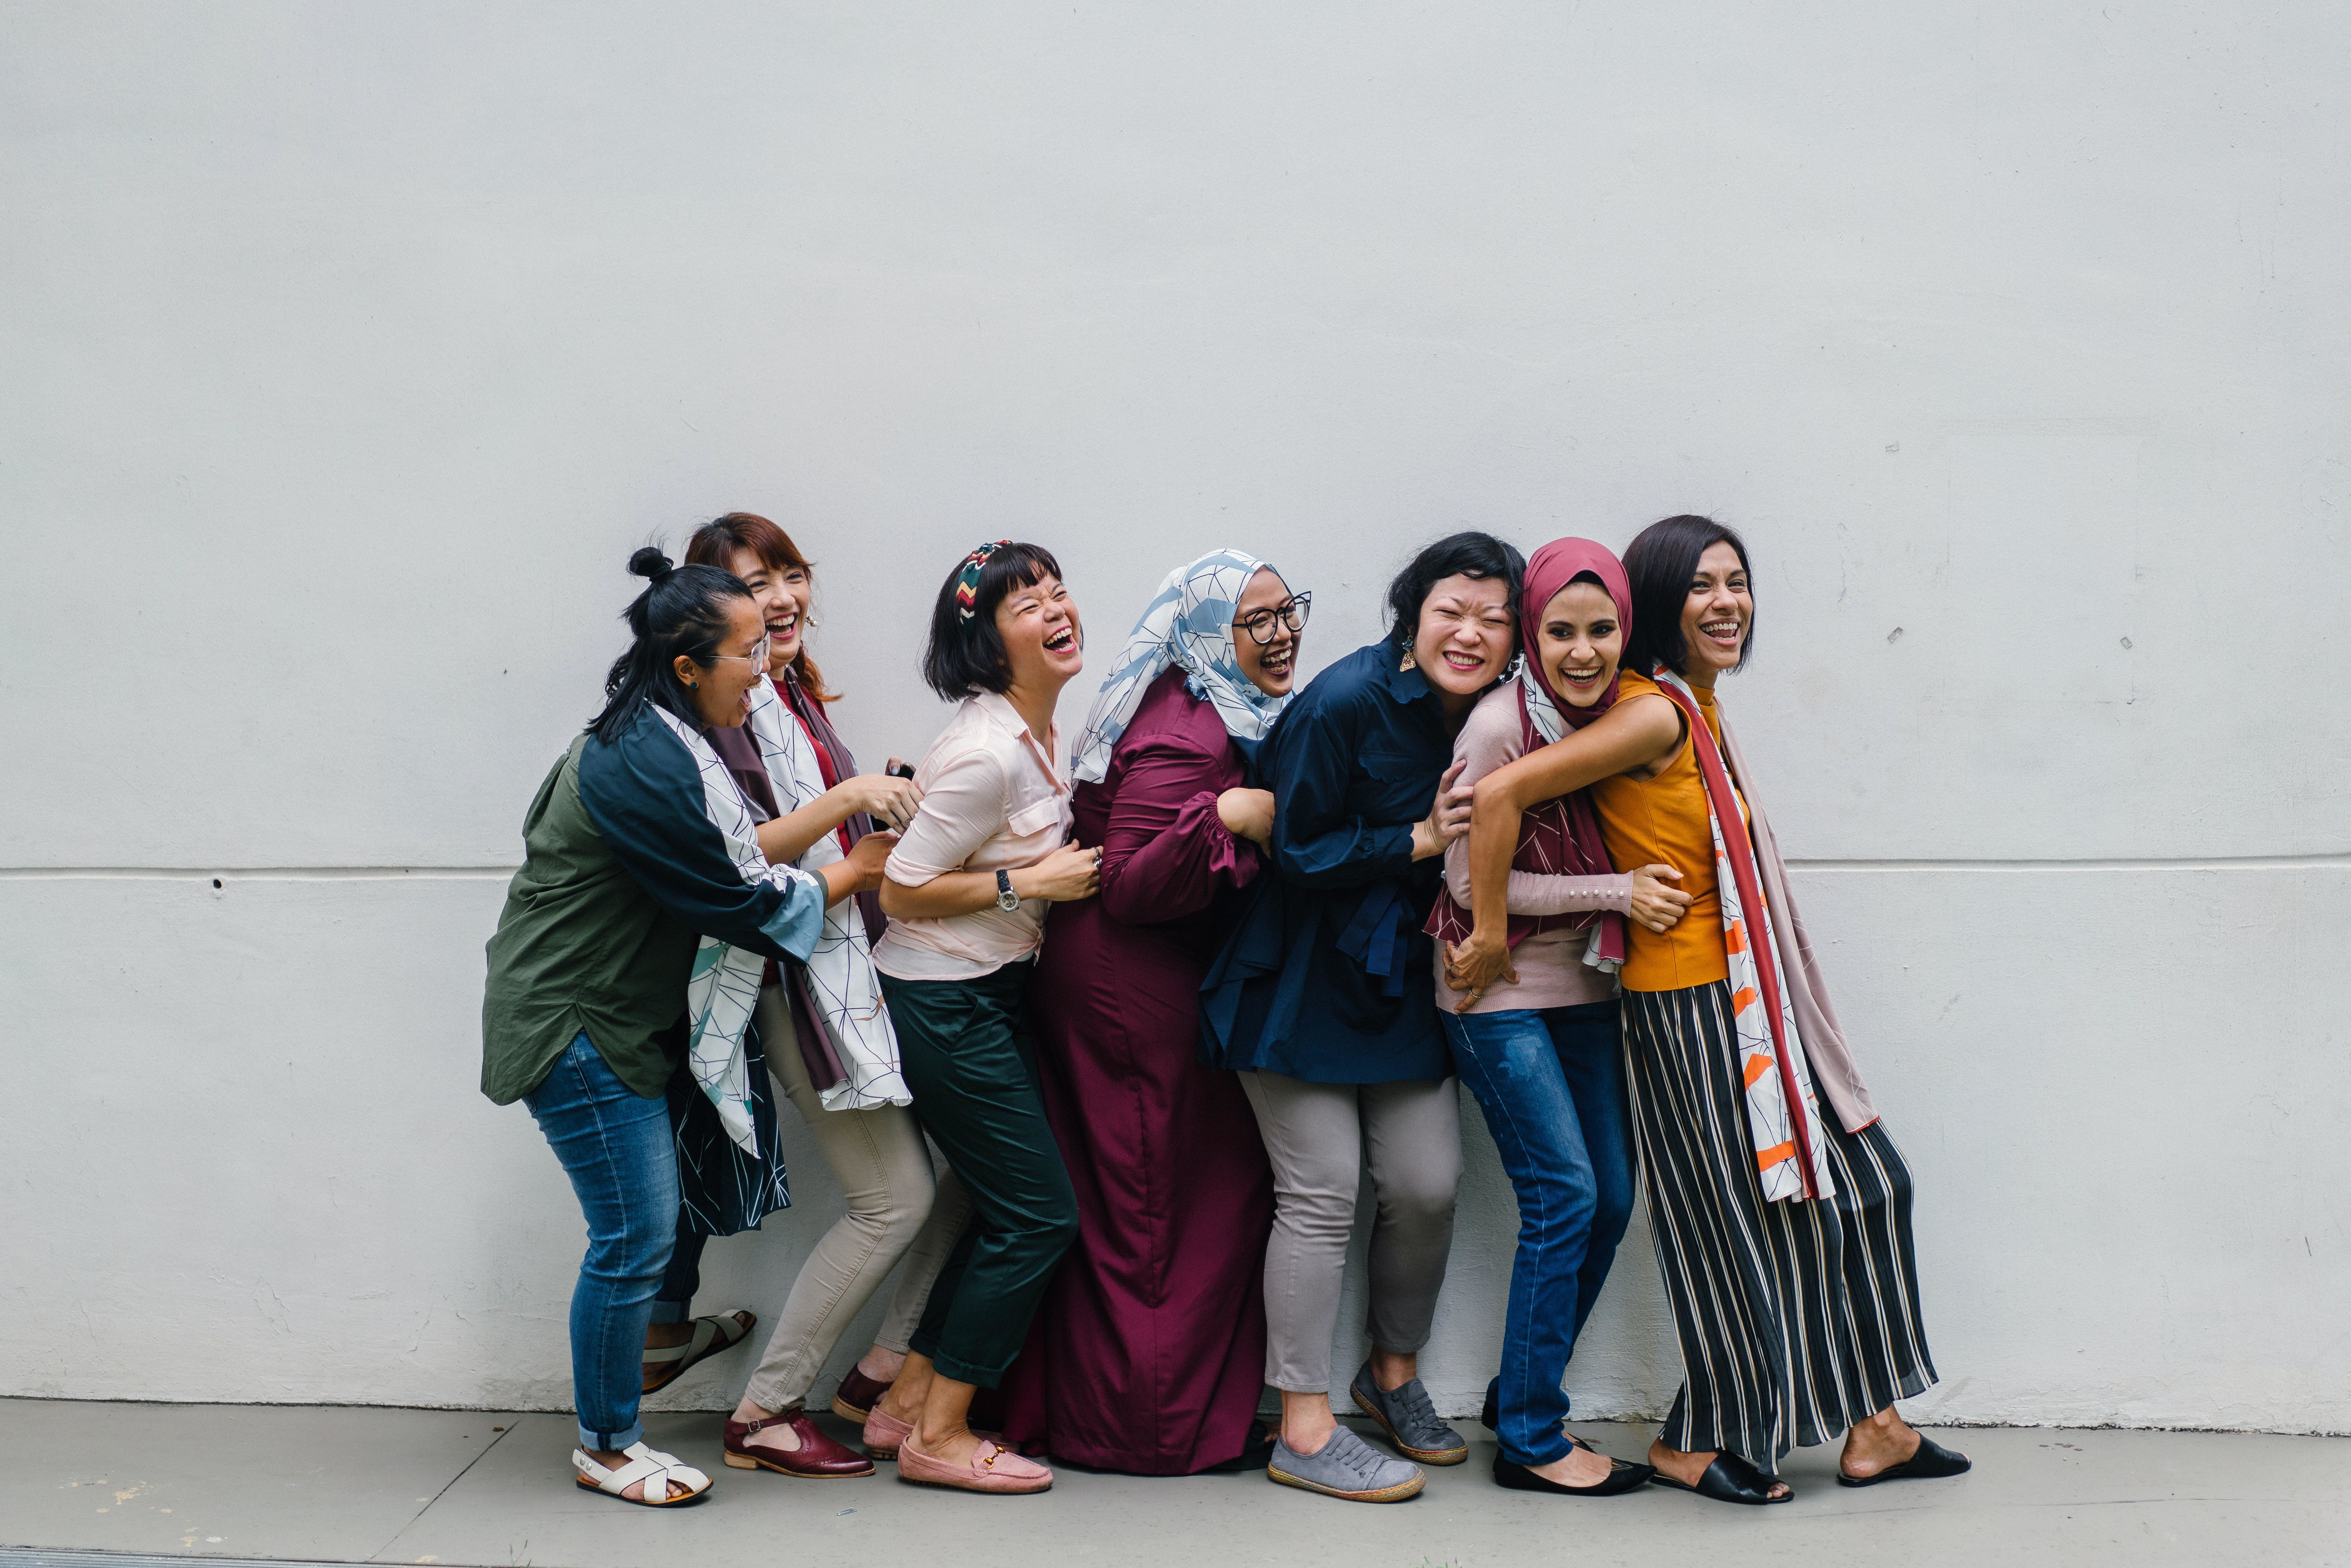 Image showing a group of women smiling